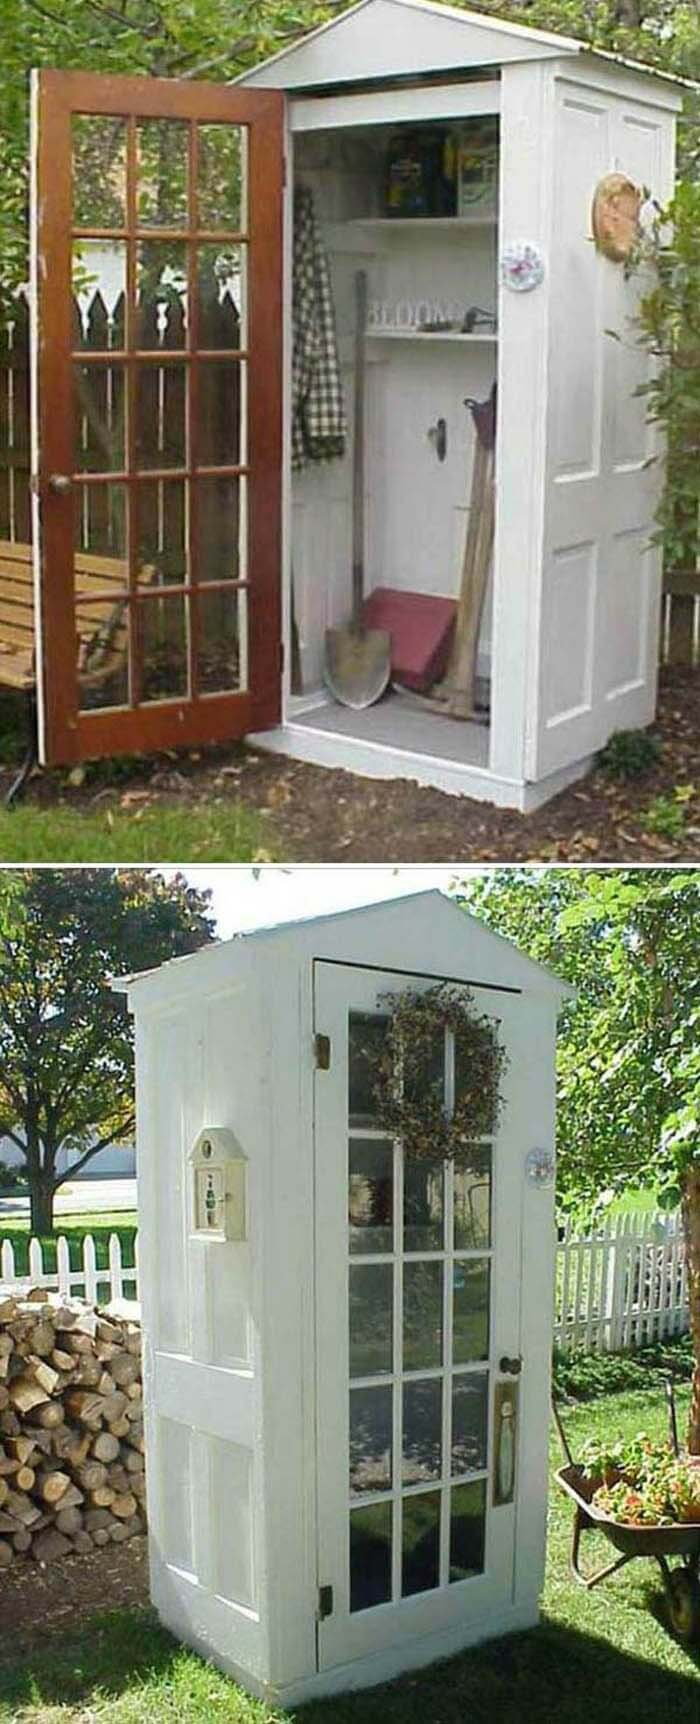 A Whimsical, Booth-Like, Glass Door Storage Shed #shed #garden #decorhomeideas